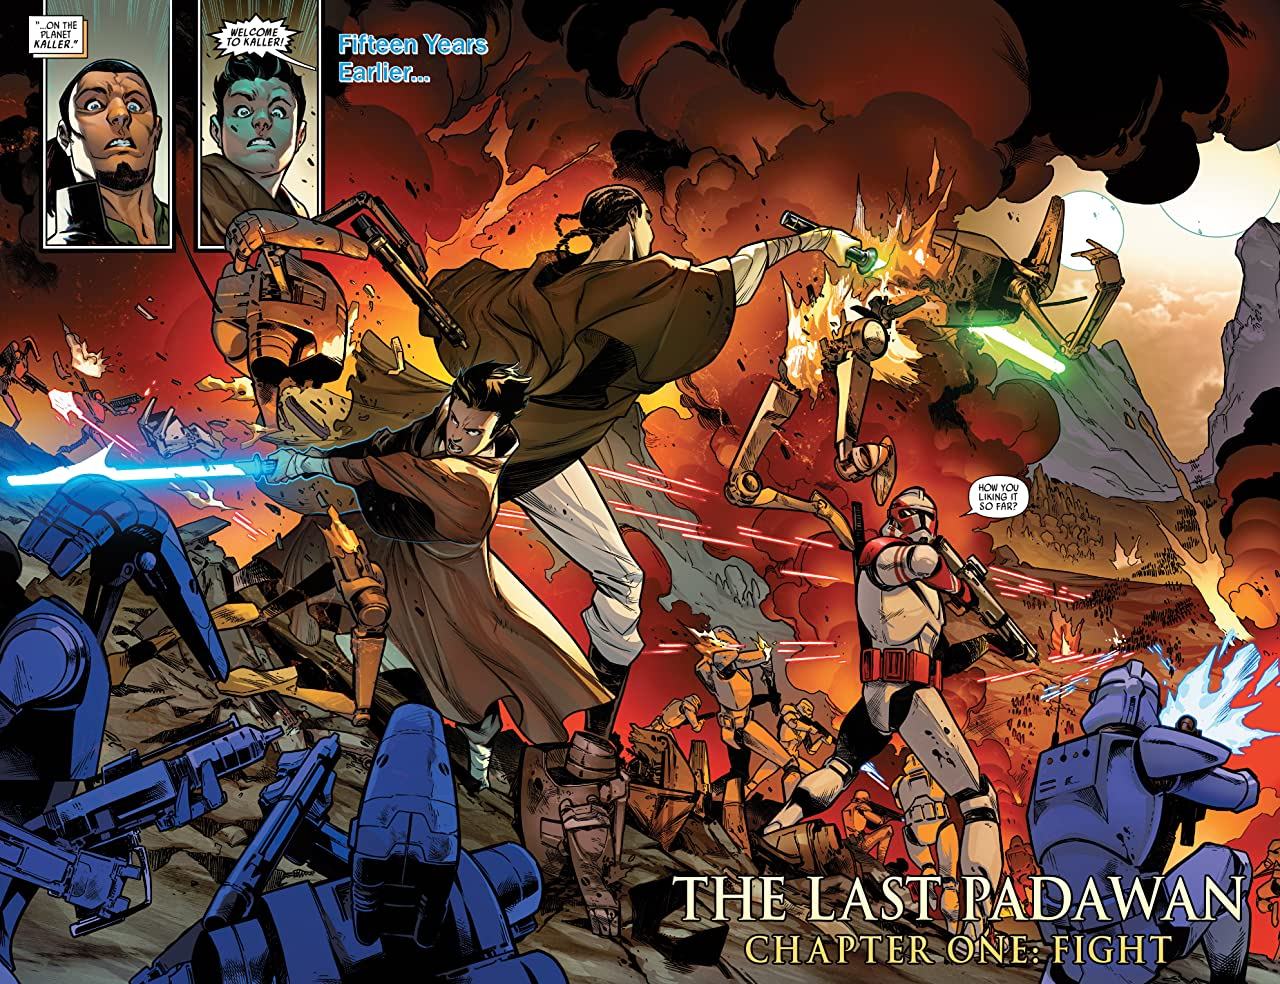 Kanan - The Last Padawan #1